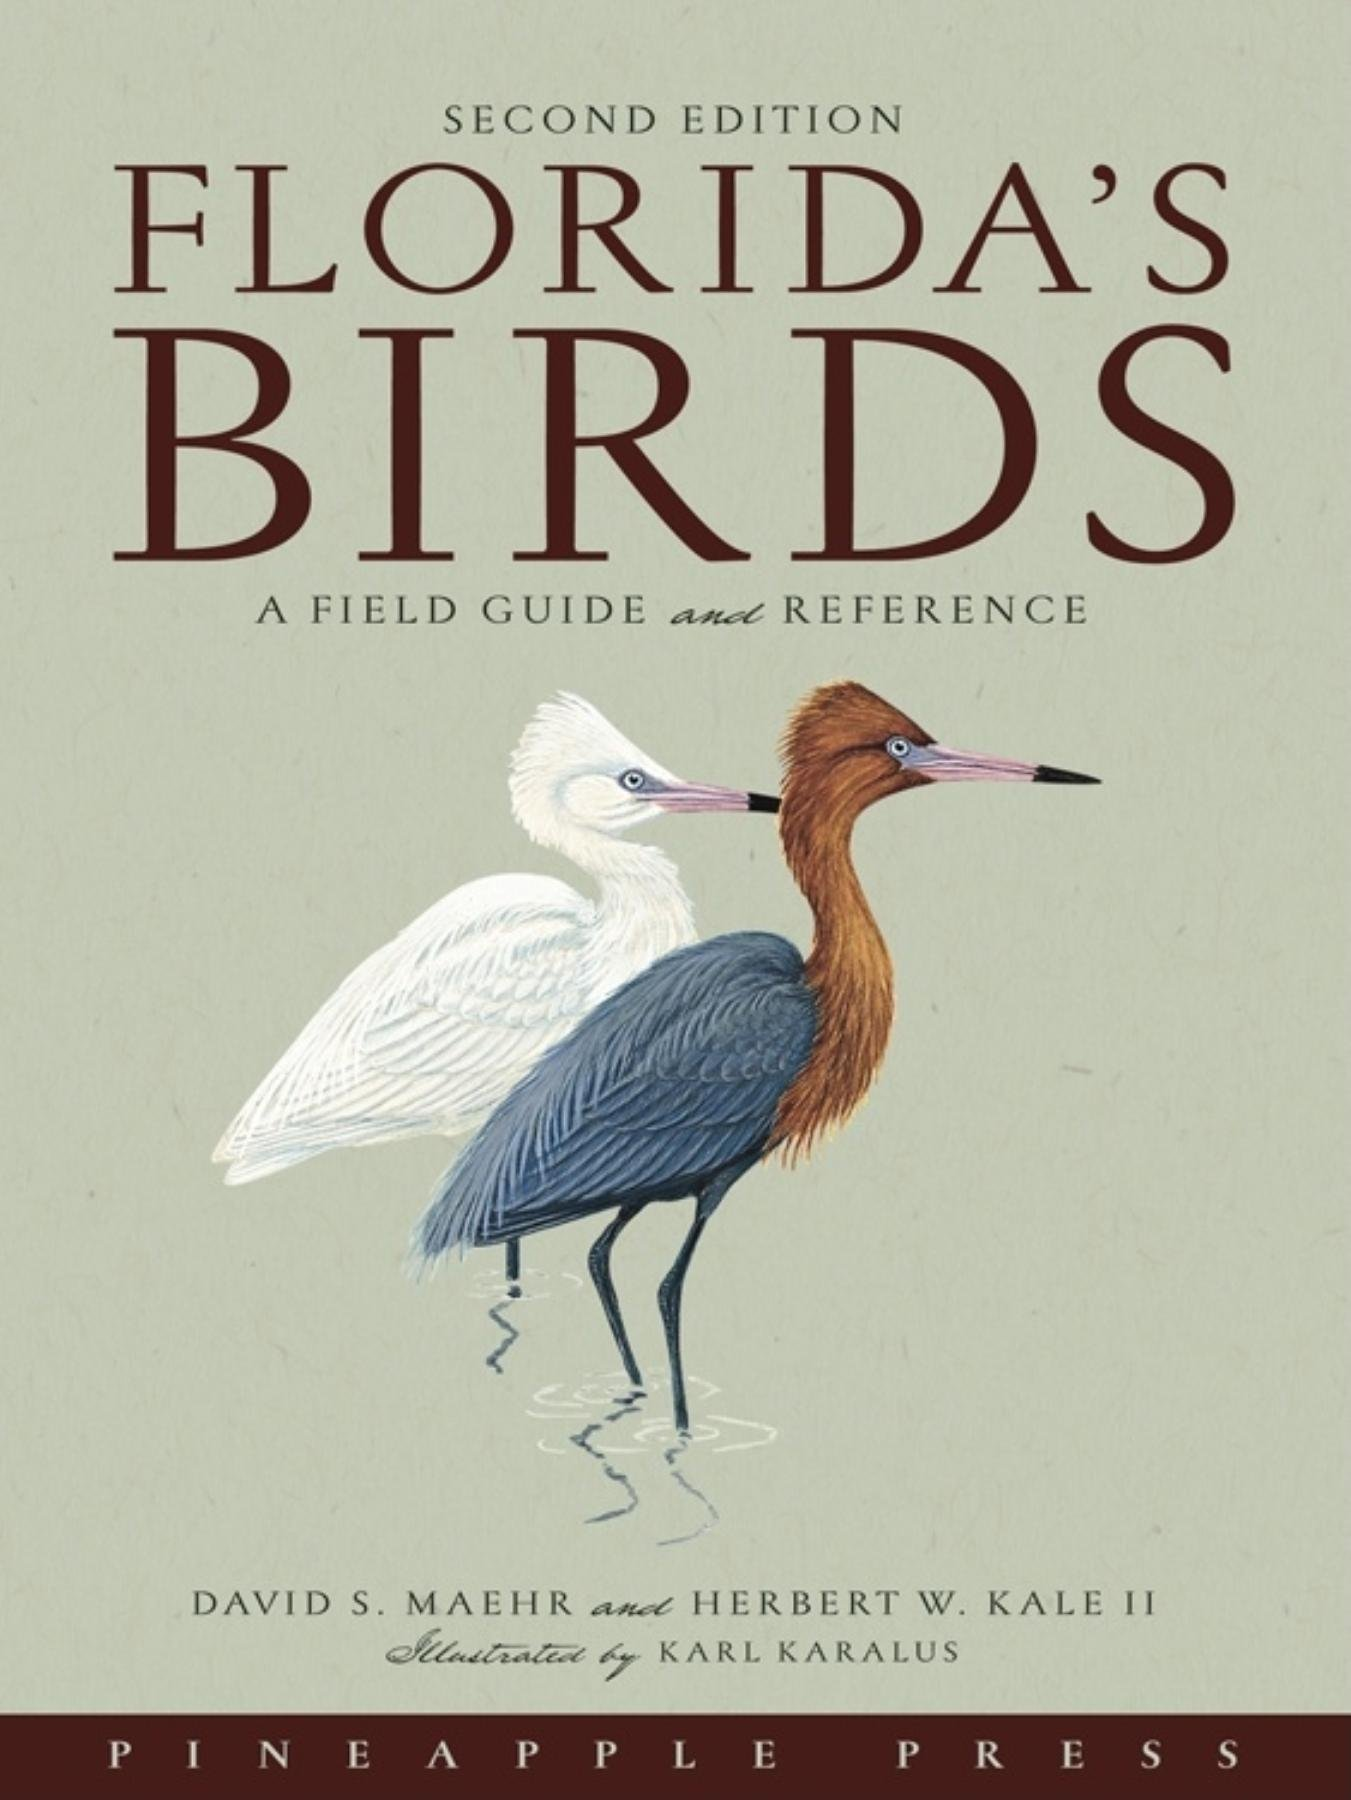 Florida's Birds: A Field Guide and Reference, Maehr, David S.; Kale, Herbert W.